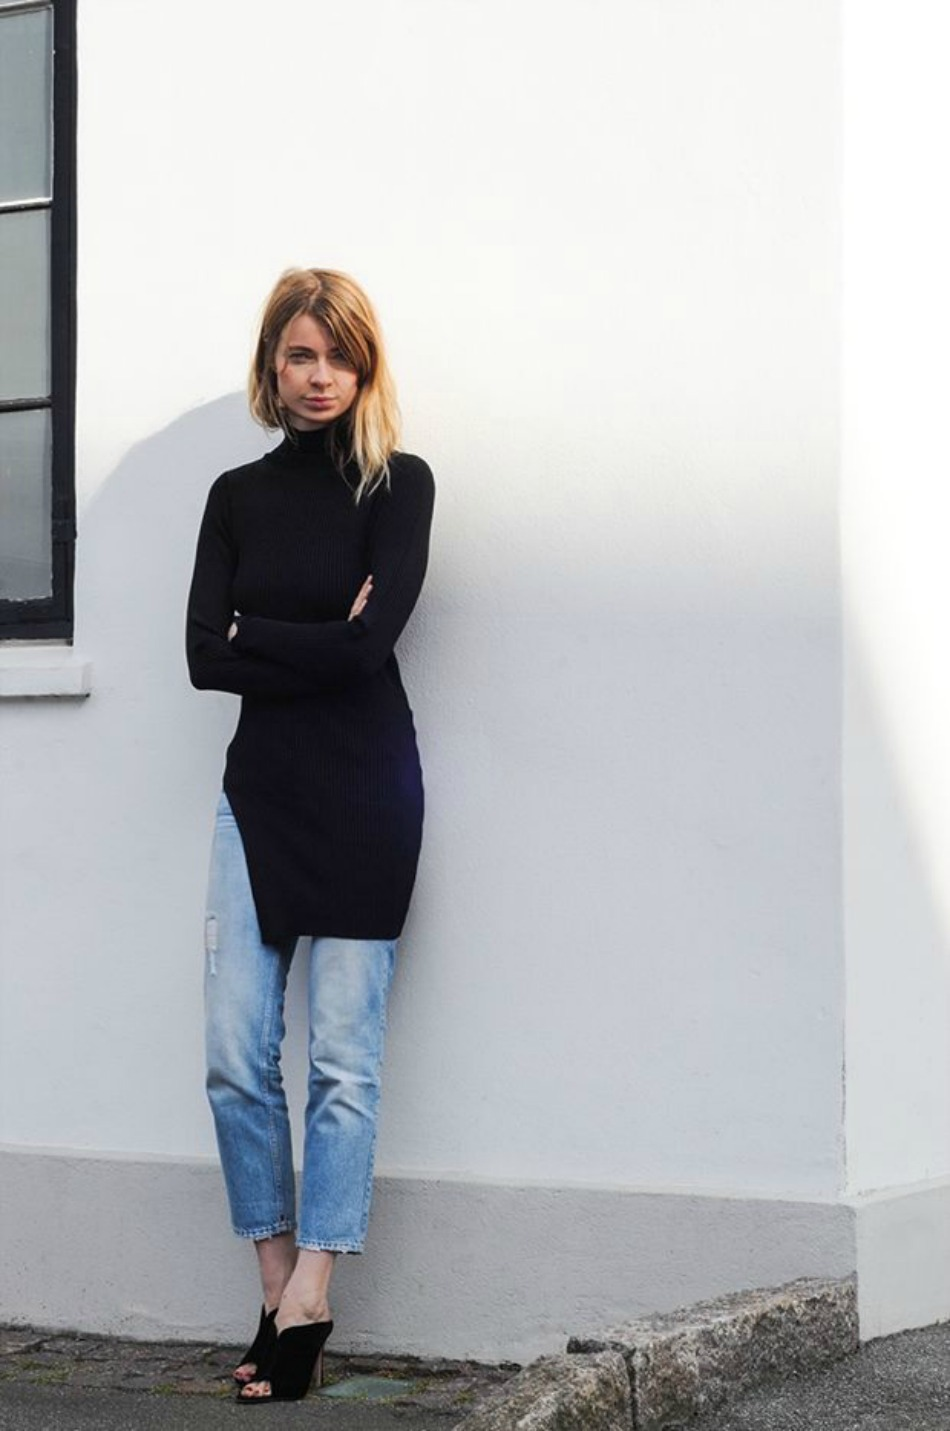 The Top 20 Best Dressed Nordic Bloggers — NORDIC STYLE MAG